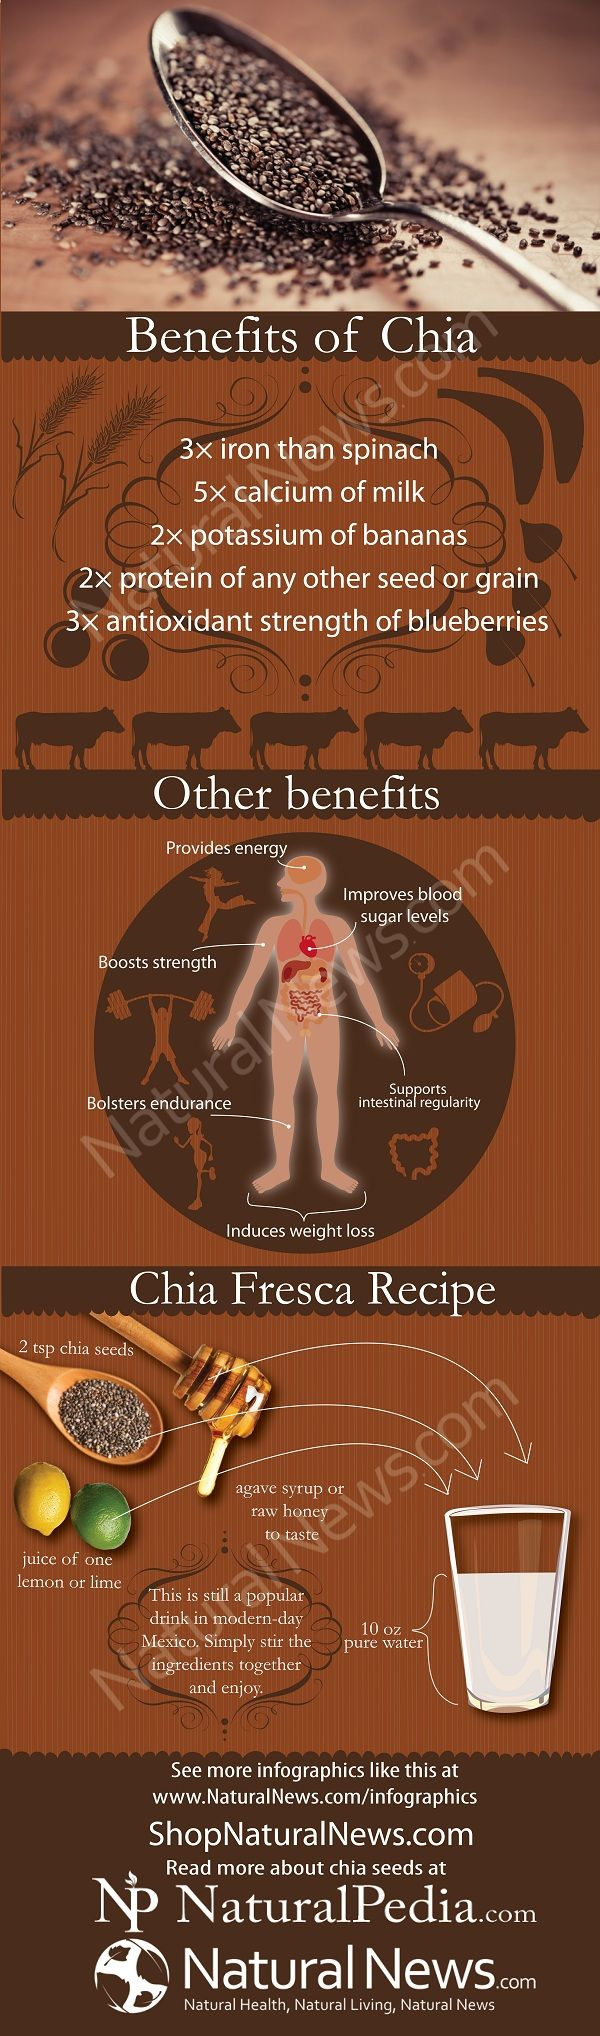 Chia seeds are really good for you. I've started adding a TBSP or two to just about everything I cook. They're also a good choice for long-term food storage, because they keep well and don't take up much space.